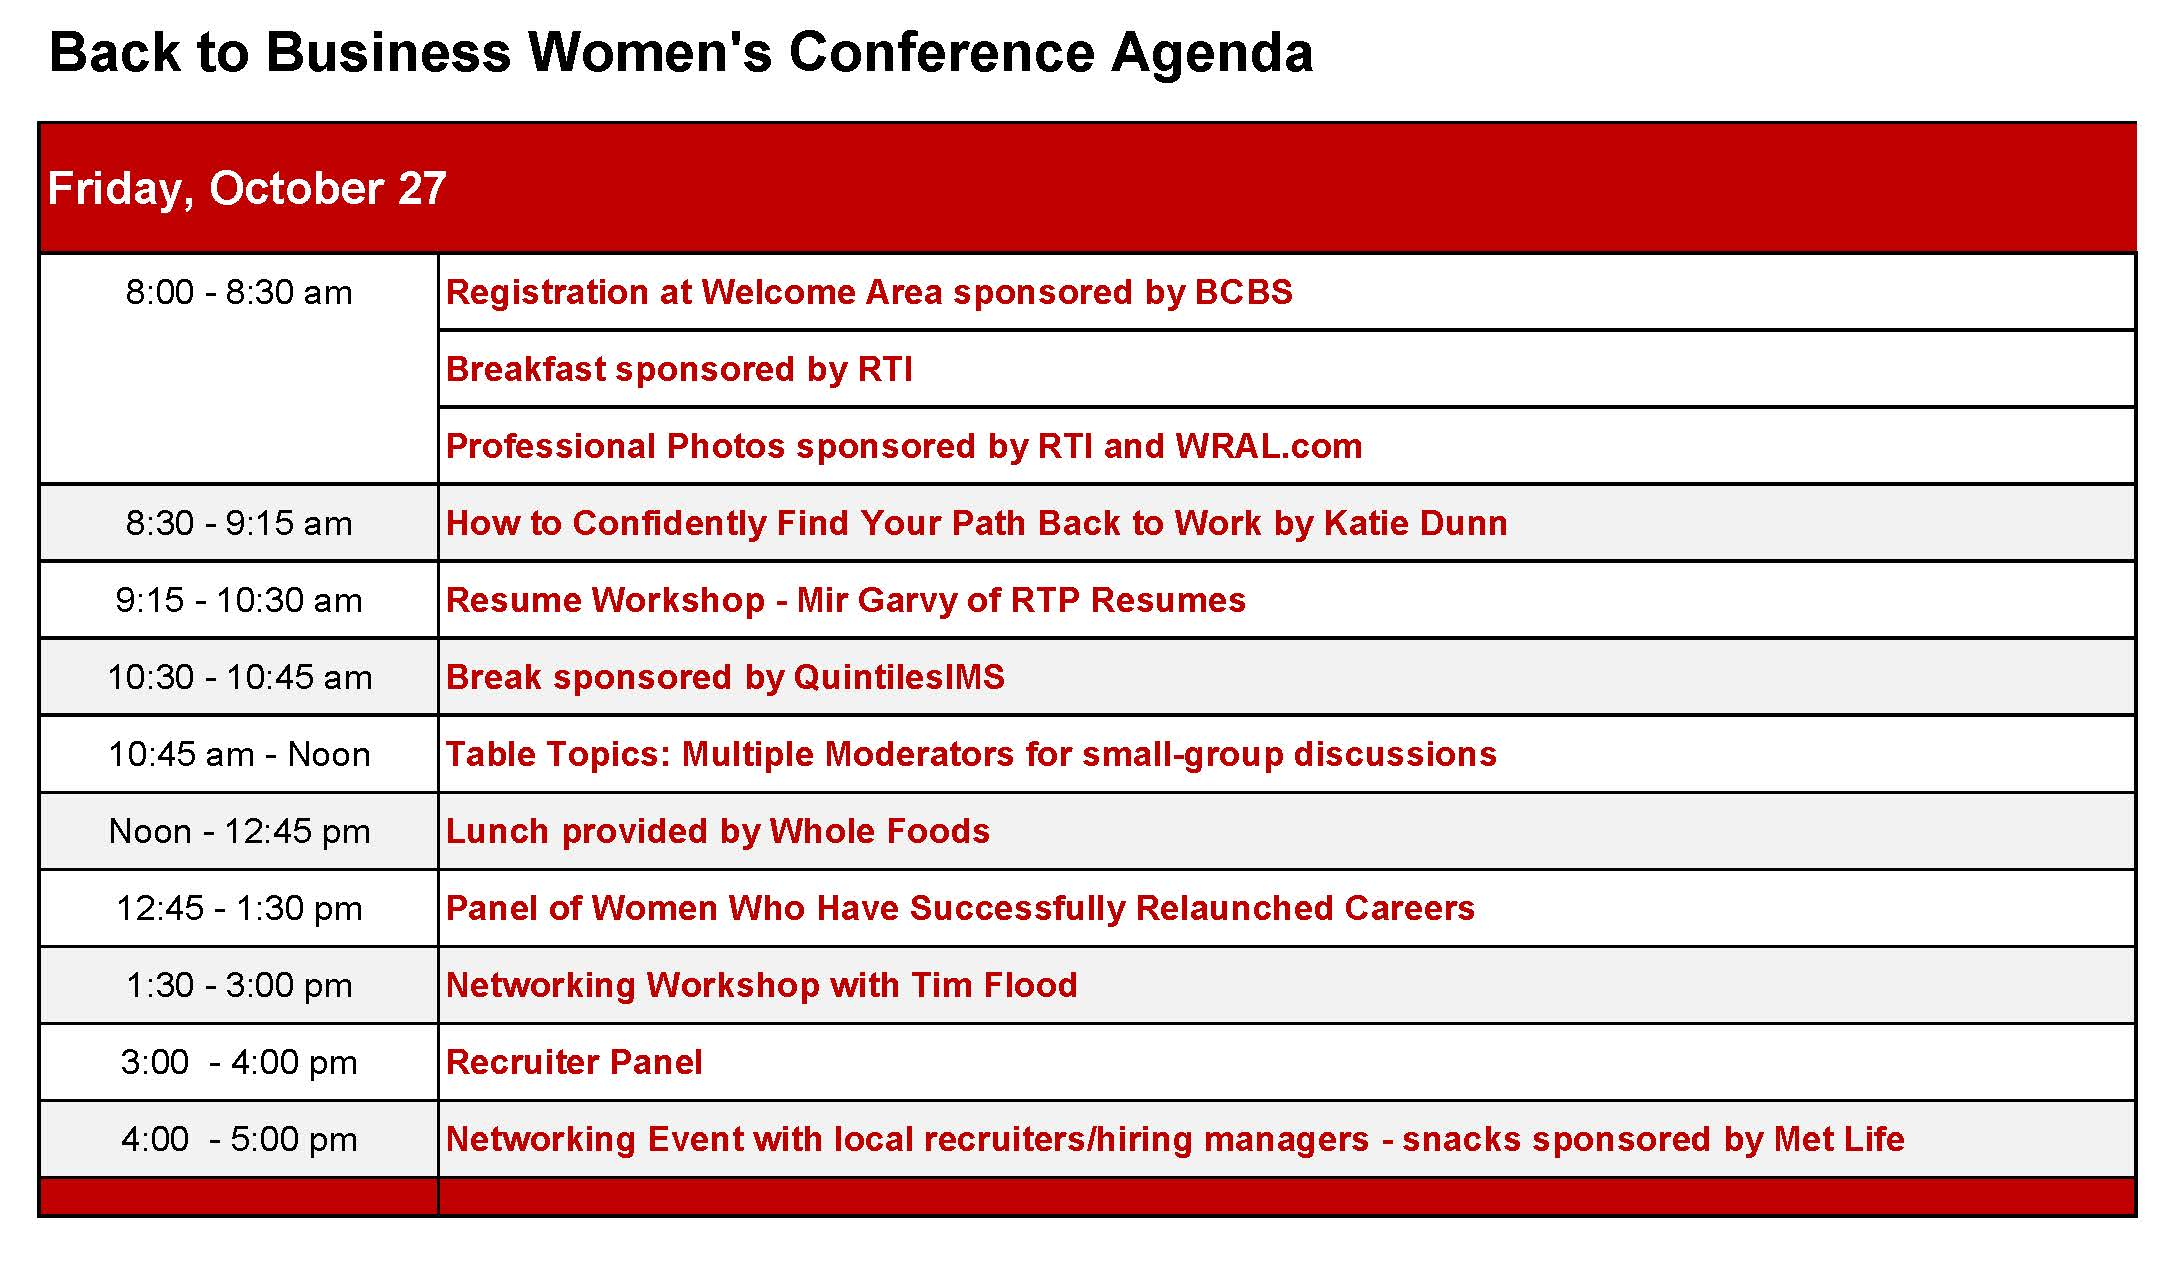 Conference Agenda | Conference Agenda Back To Business